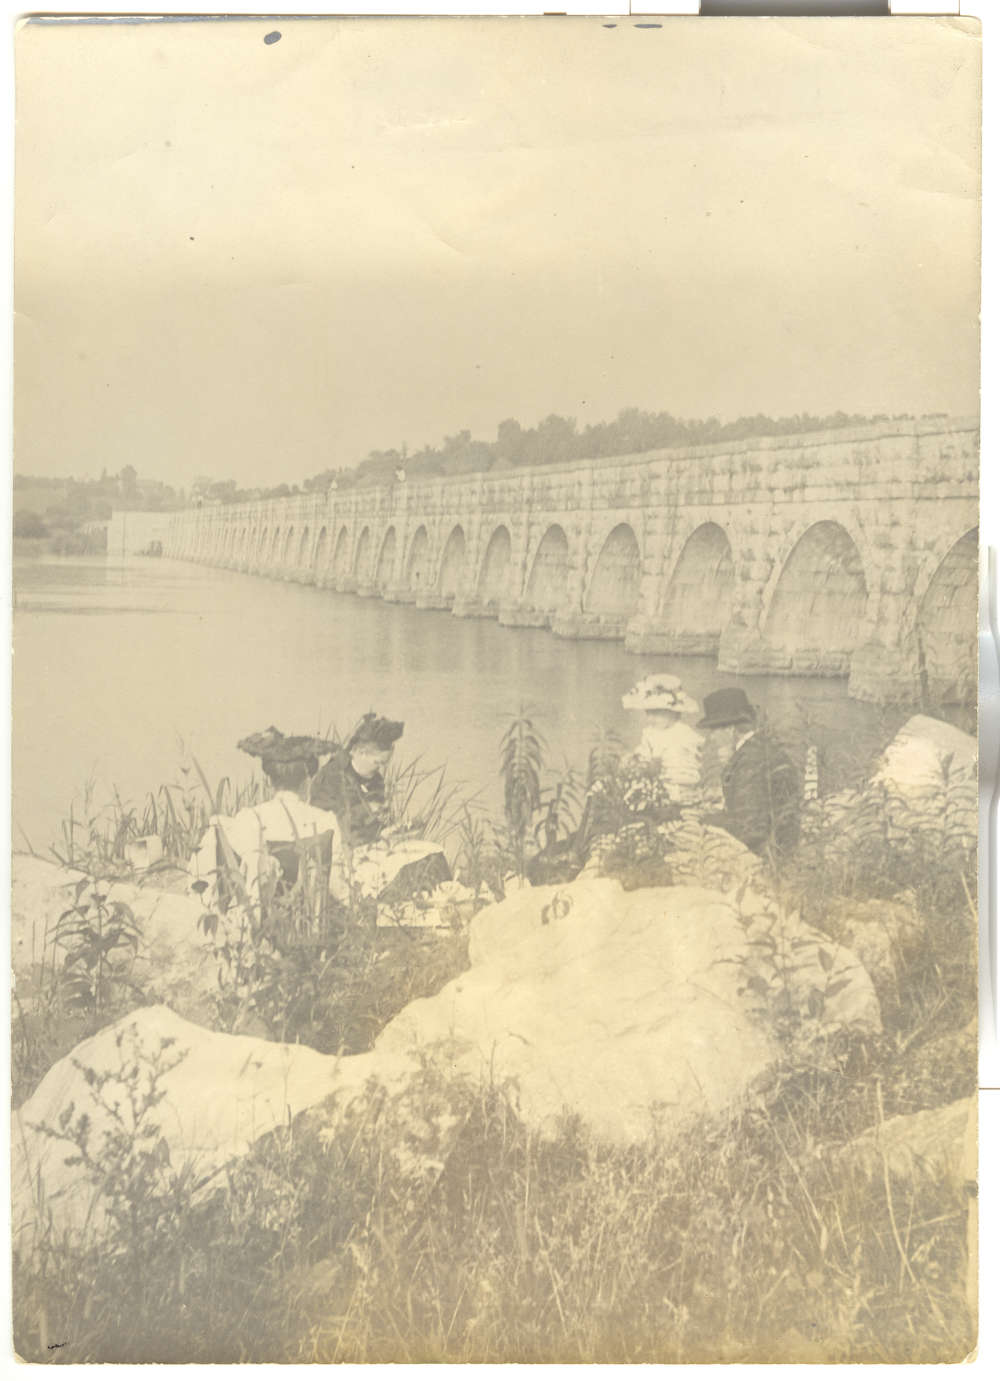 In this circa 1890s photo, picnickers enjoy the afternoon with the Richmond aqueduct as a backdrop. This aqueduct carried the canal over the Seneca River at Montezuma (it also was called the Montezuma aqueduct.)